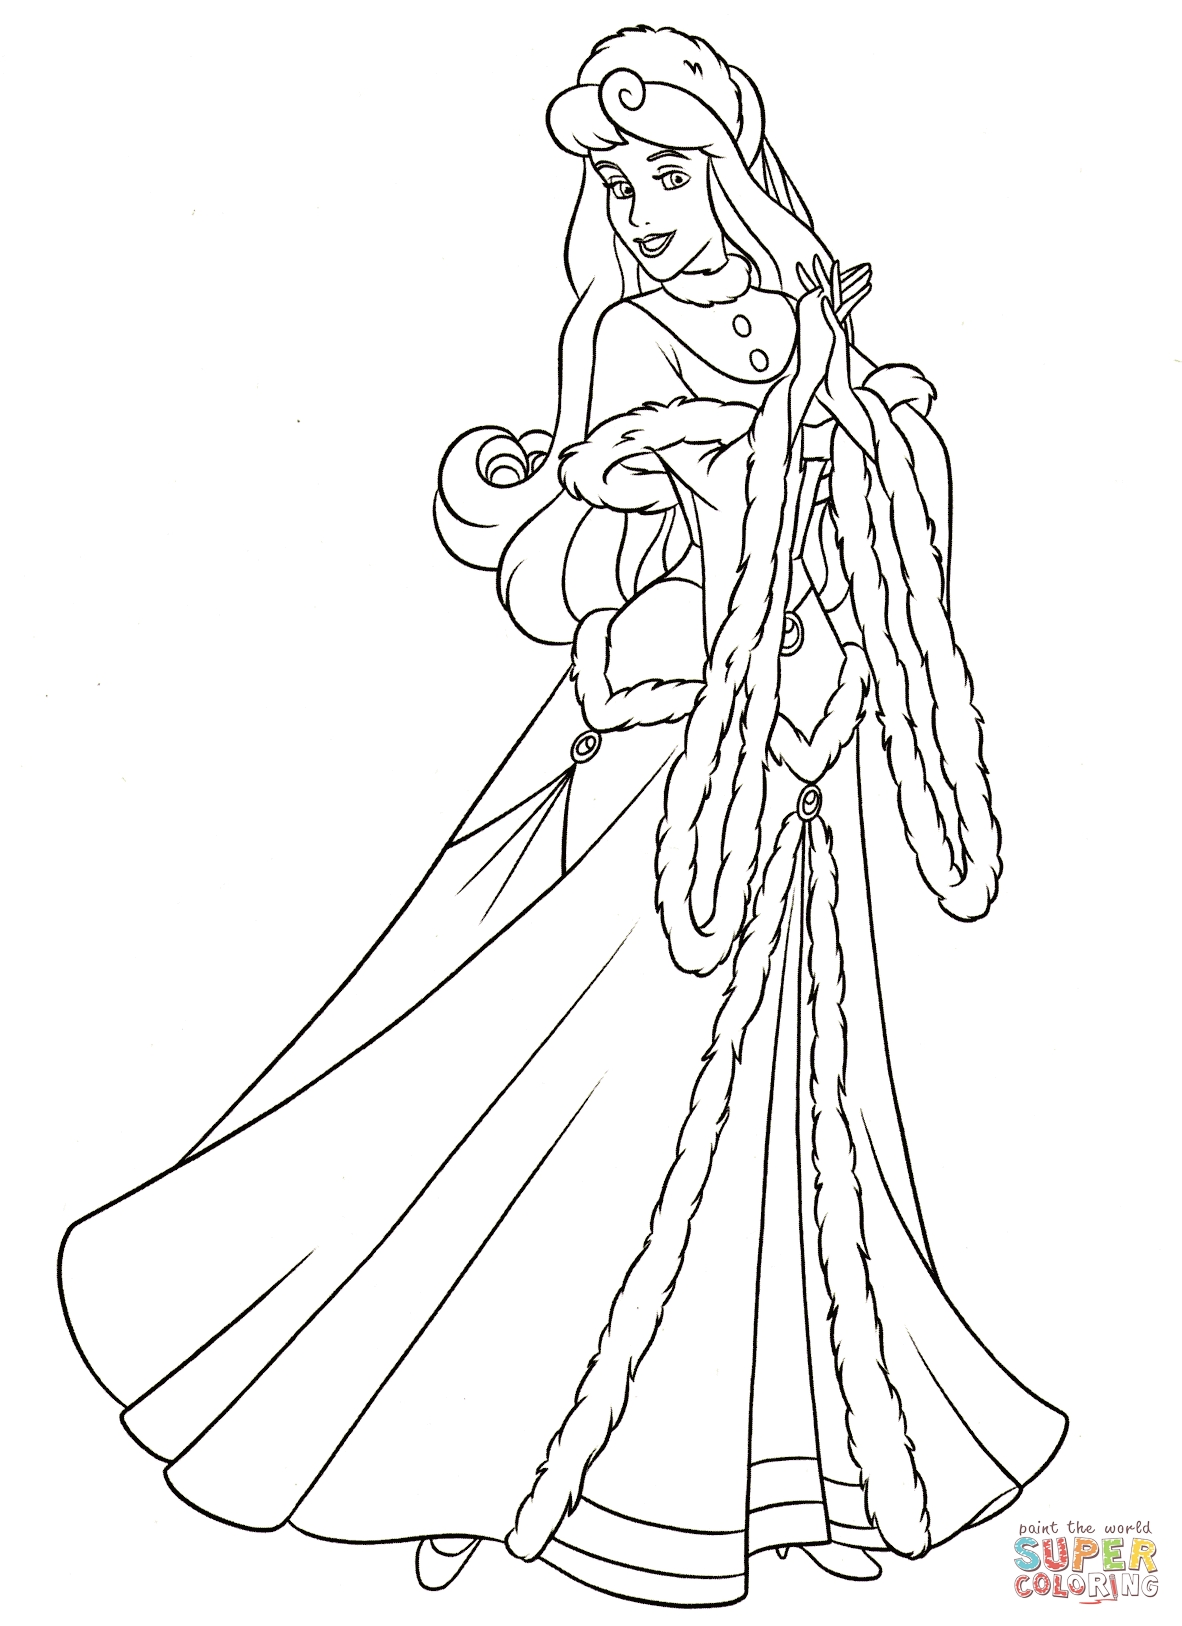 aurora coloring pages - aurora